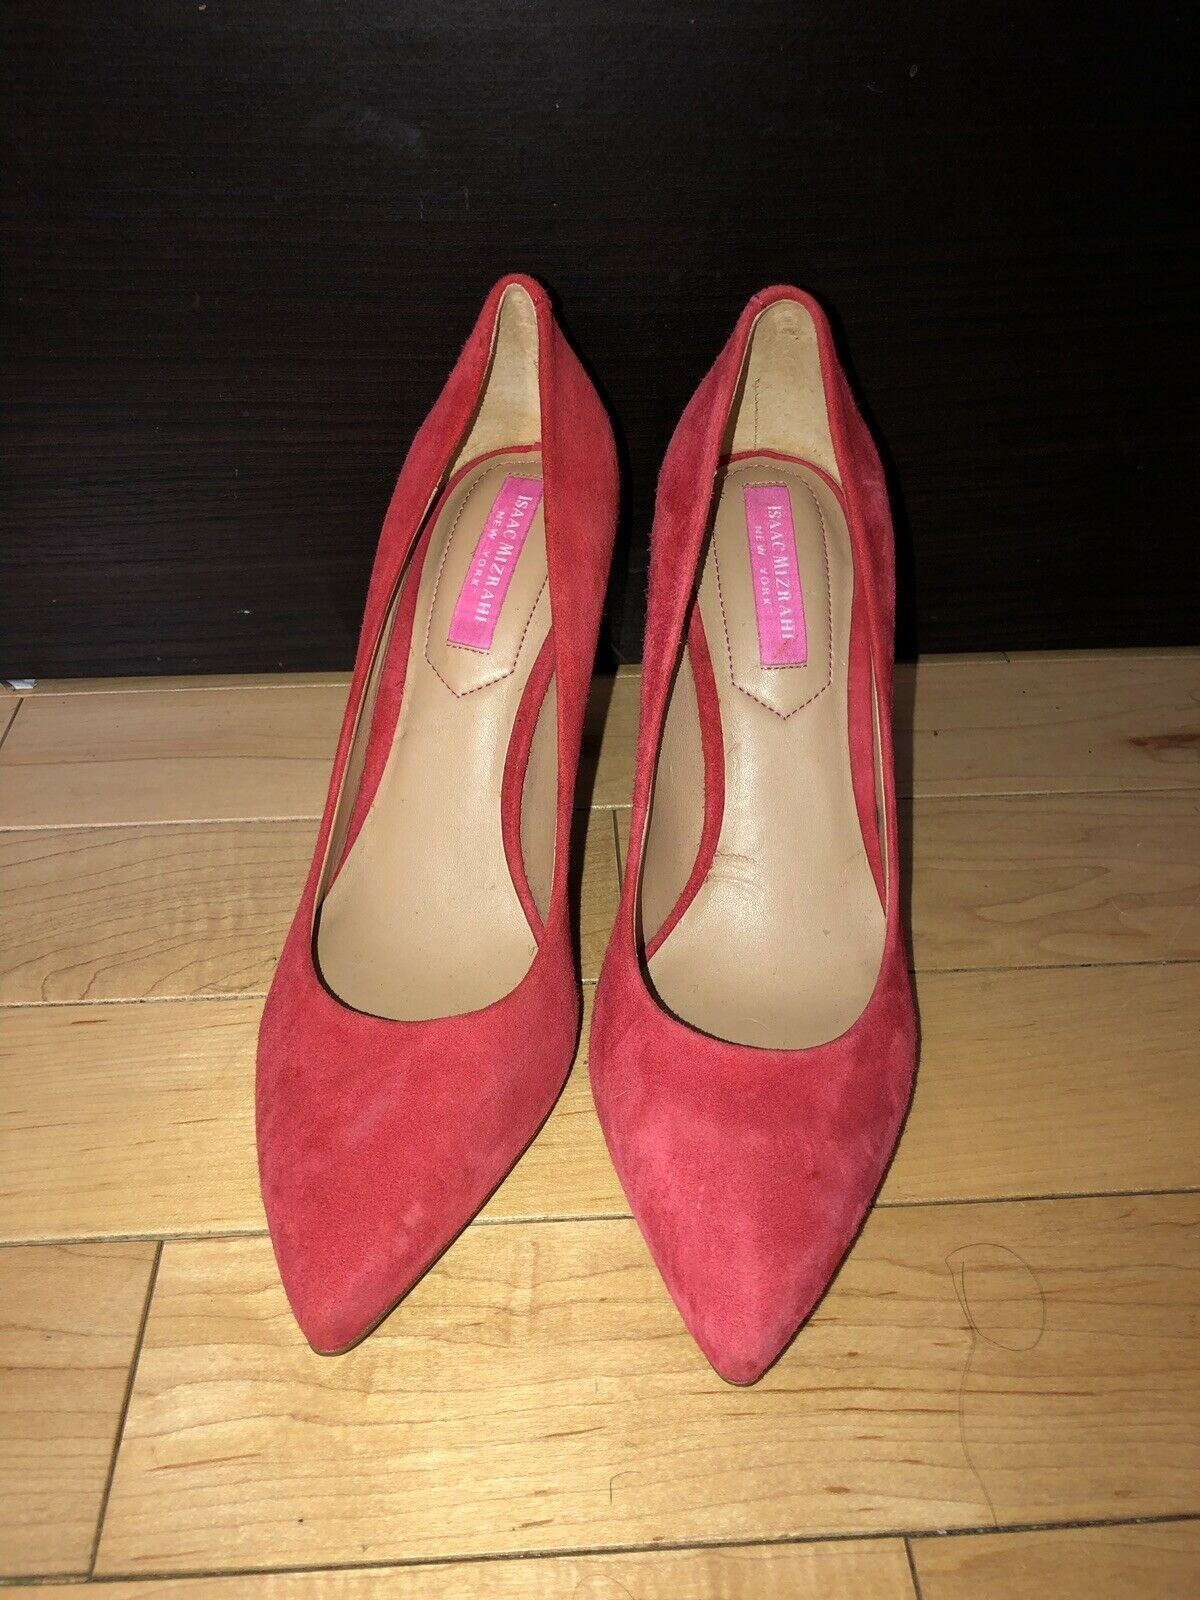 New Women's Isaac Mizrahi Coral Suede Pumps Size  US 6.5